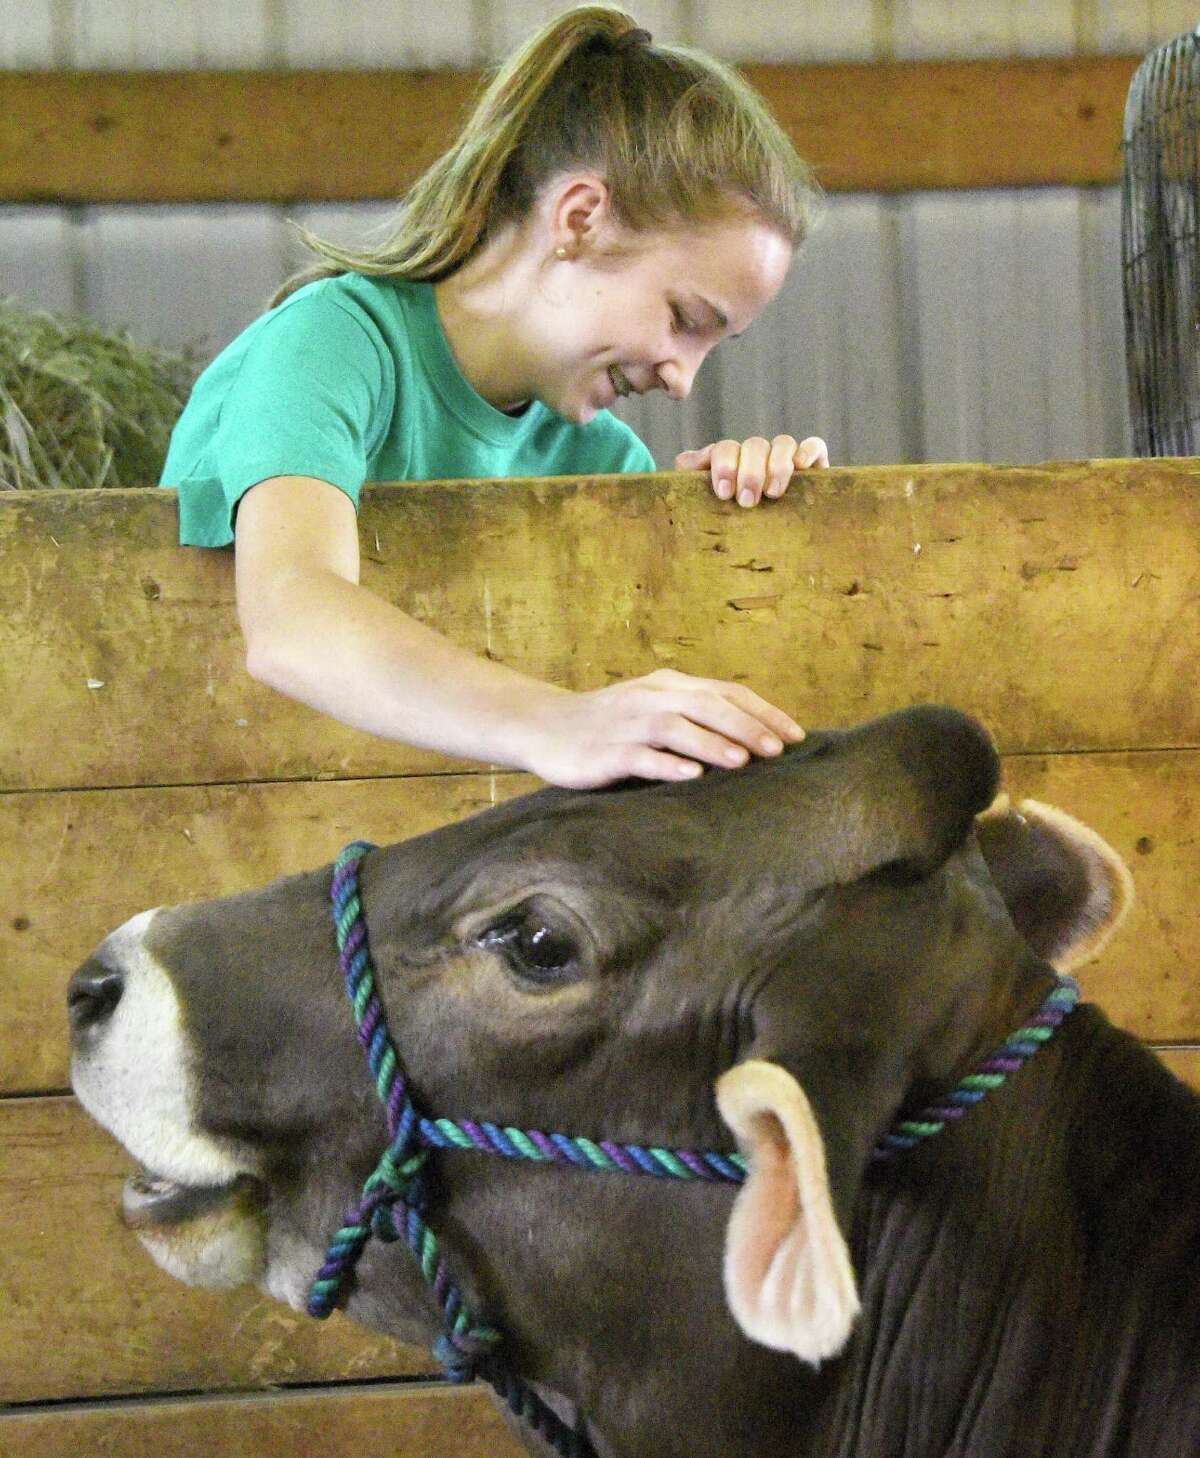 Britany Tyler, 16, of Hartford, NY, with her Brown Swiss Calamity in the cow barn at the Schaghticoke Fair Wednesday Aug. 31, 2016 in Schaghticoke, NY. (John Carl D'Annibale / Times Union)